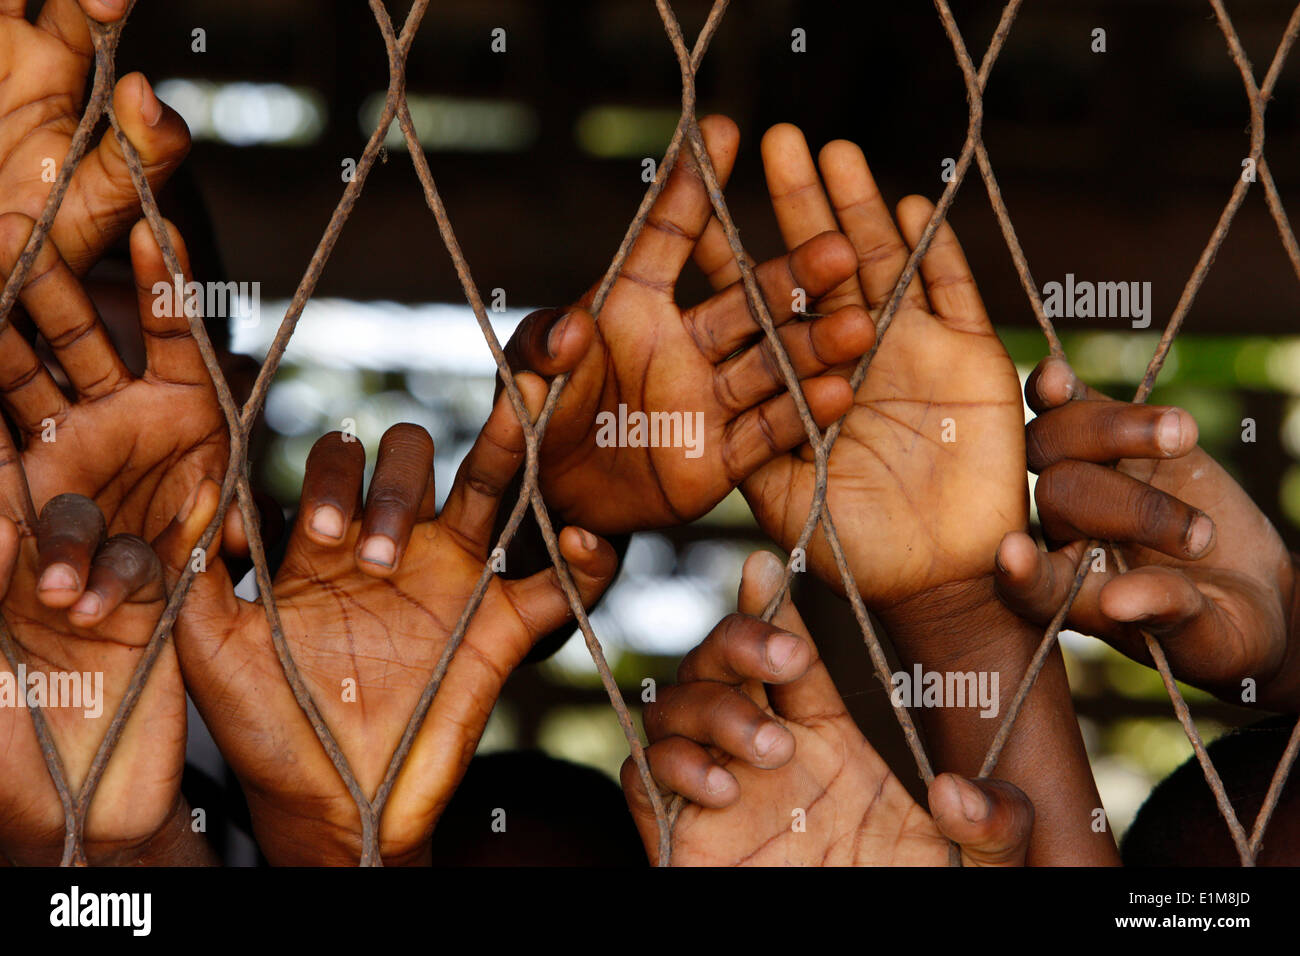 African boys' hands behind wire mesh Stock Photo